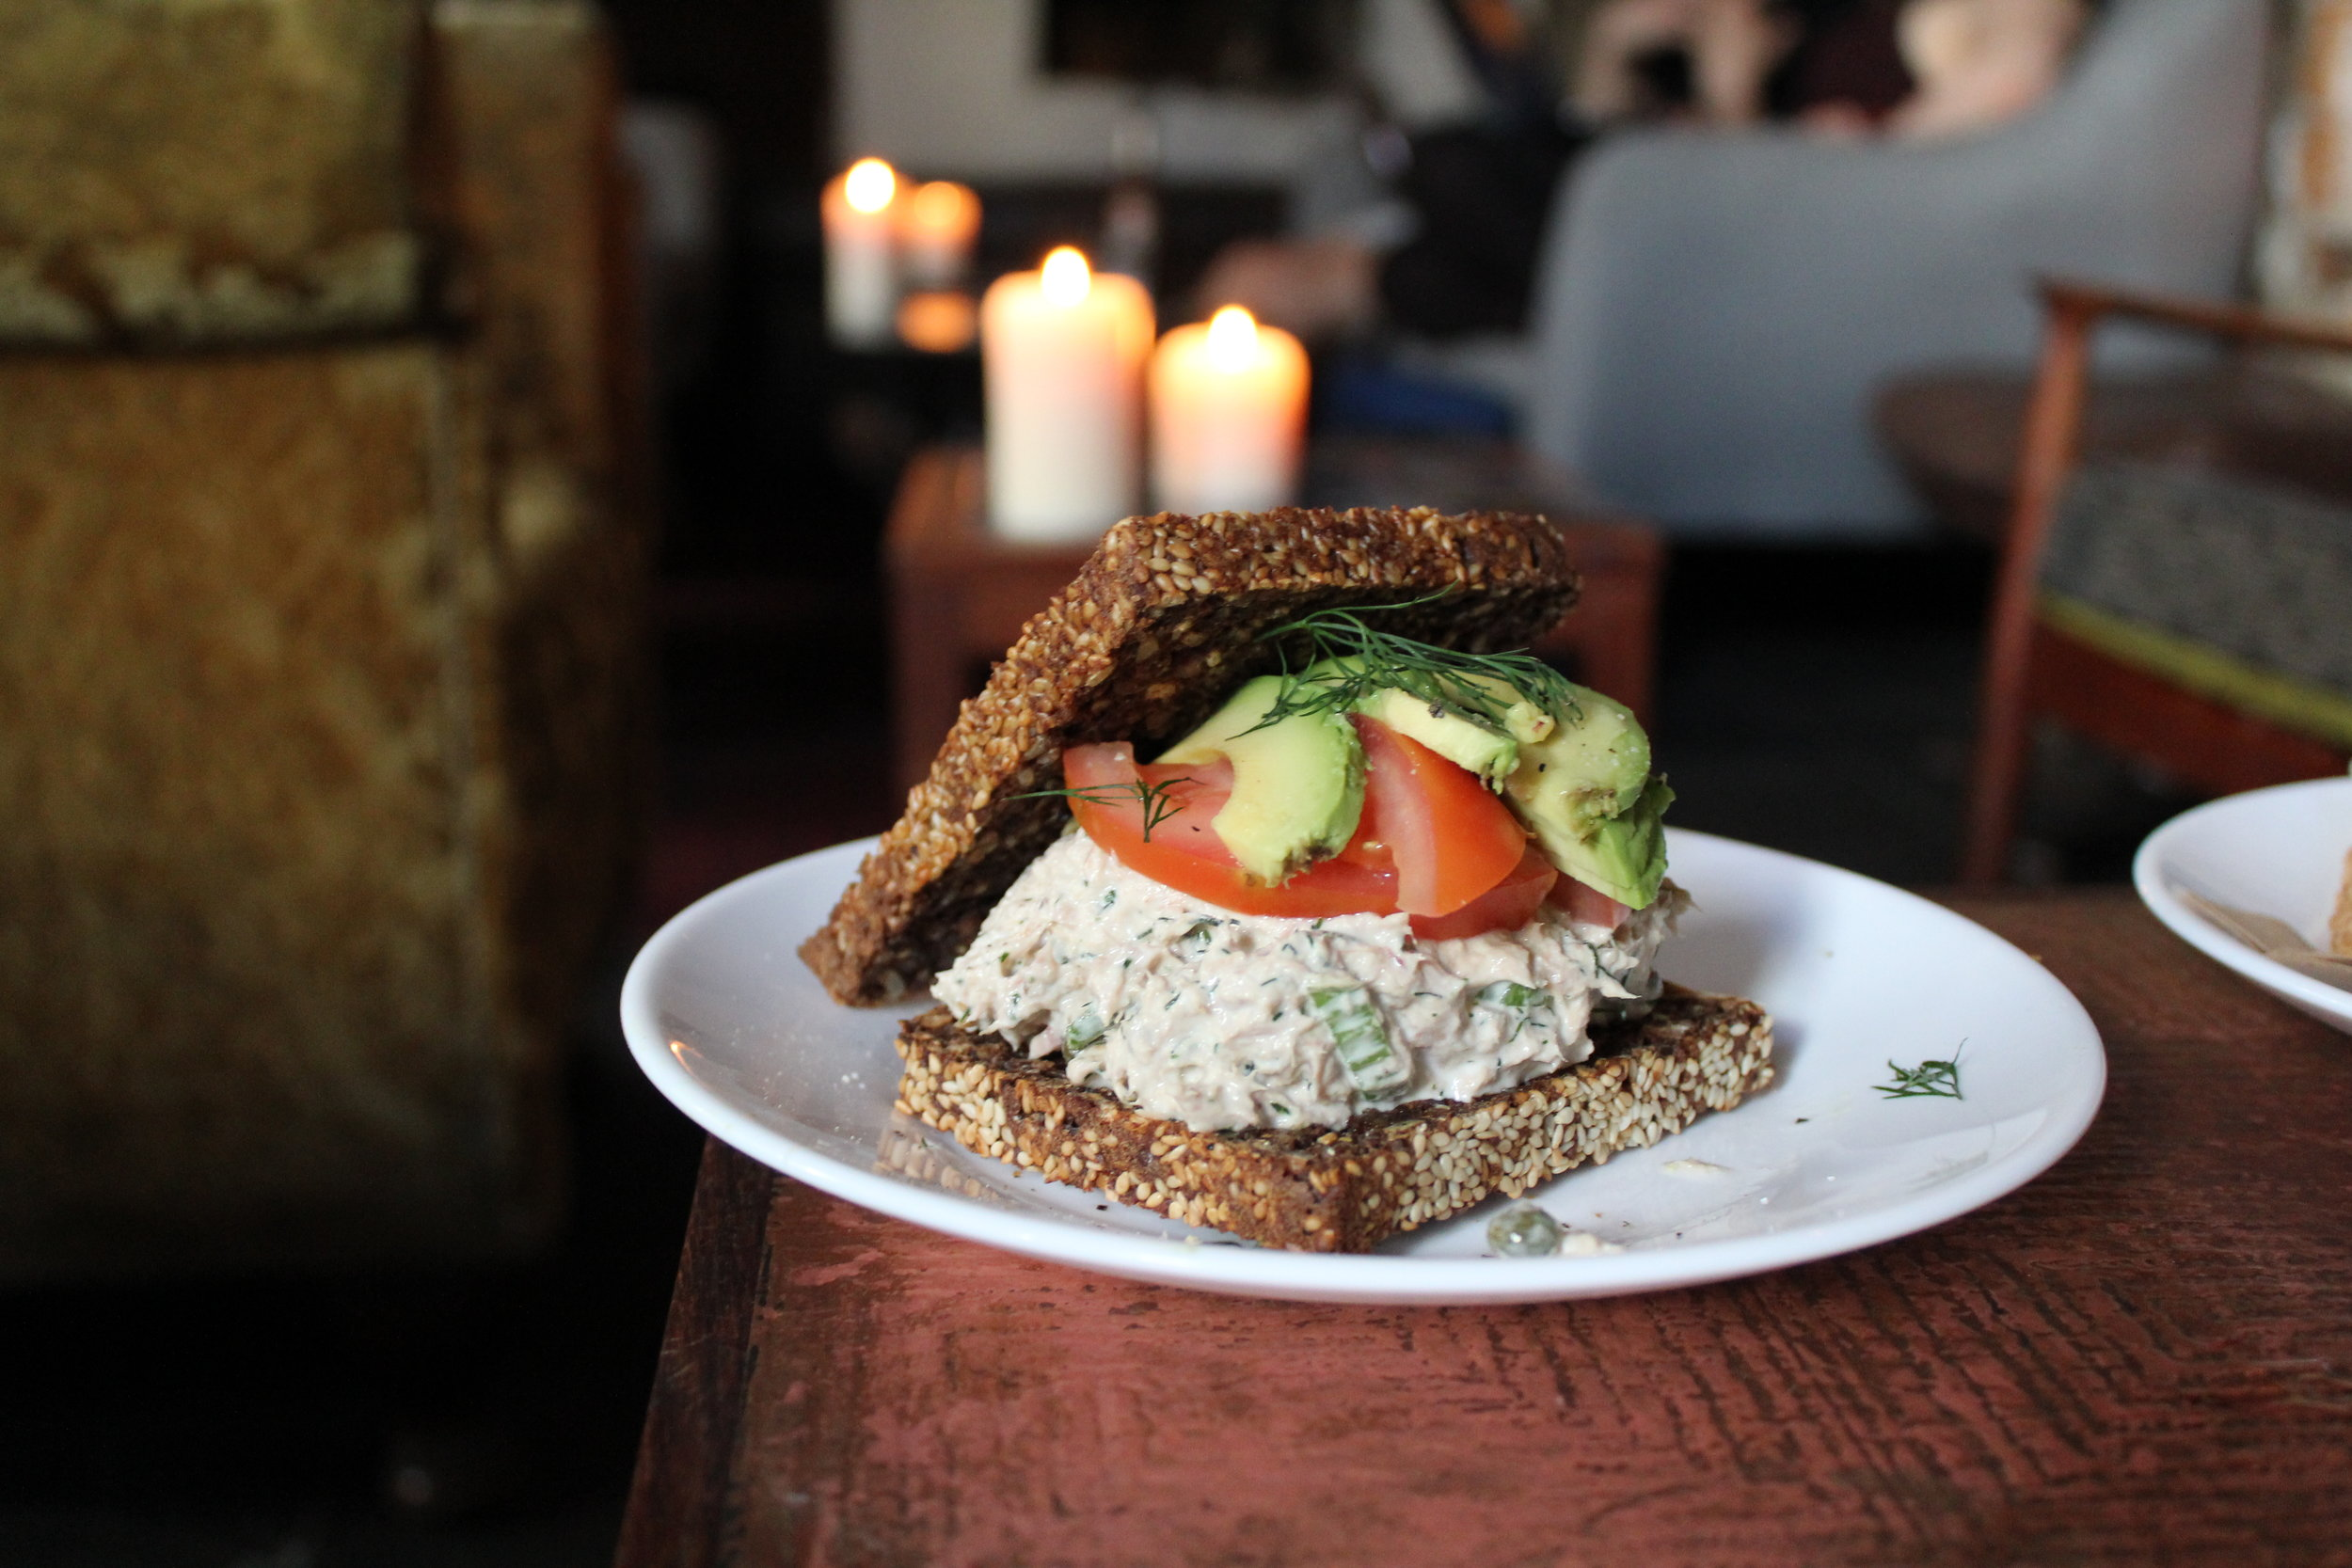 A tuna and avocado sandwich on rye at The Living Room